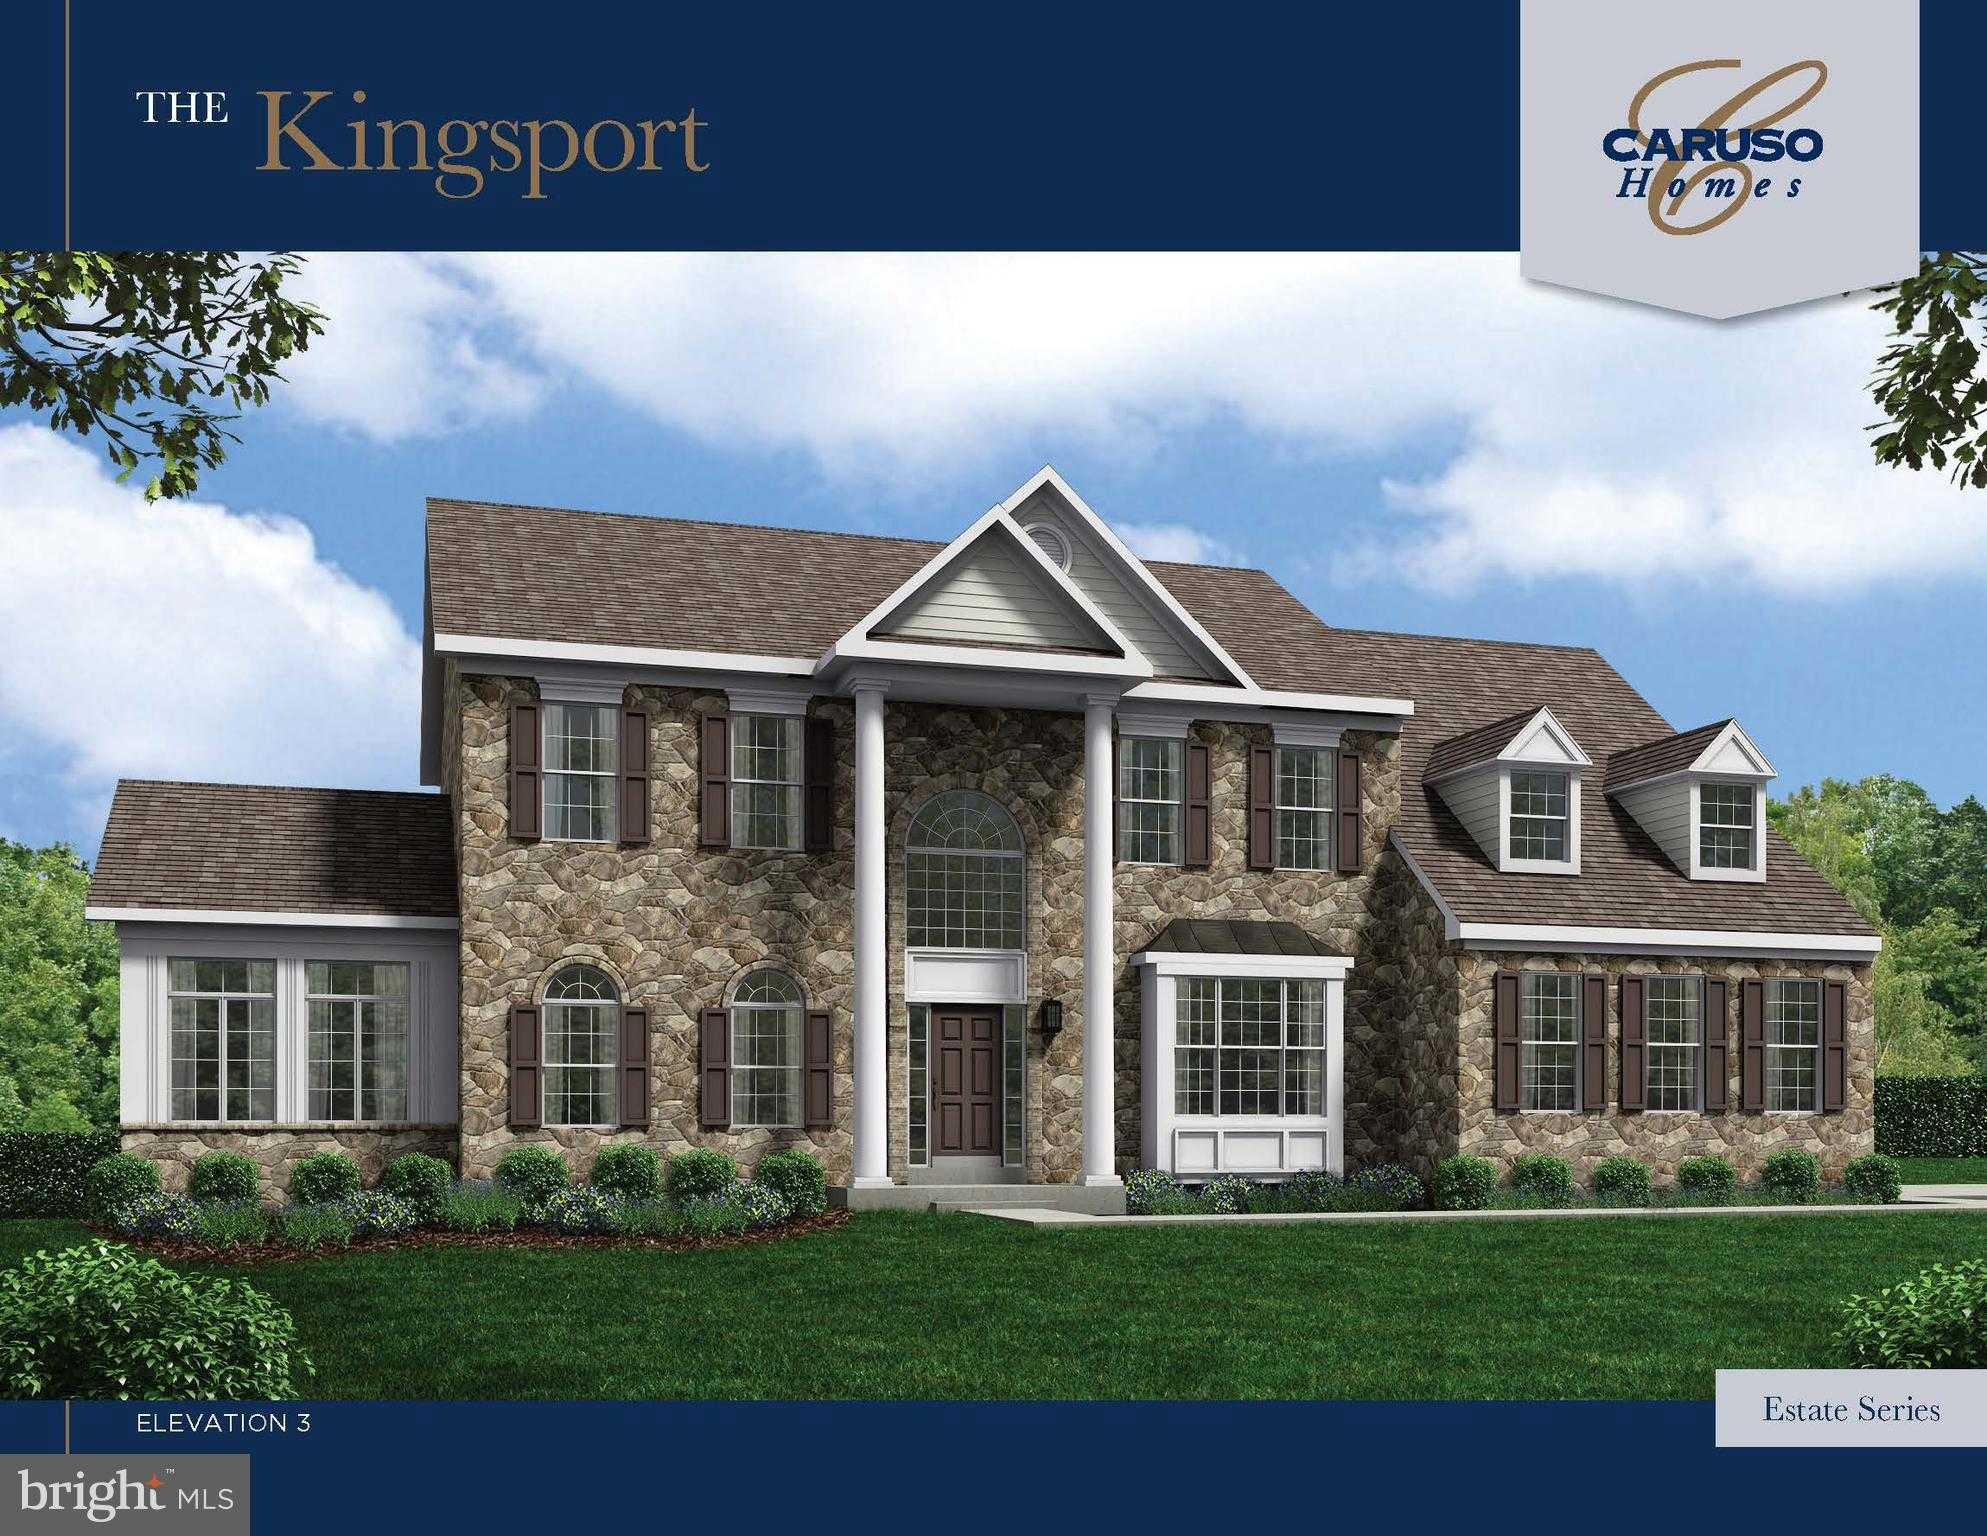 $663,739 - 4Br/3Ba -  for Sale in Gambrills, Gambrills